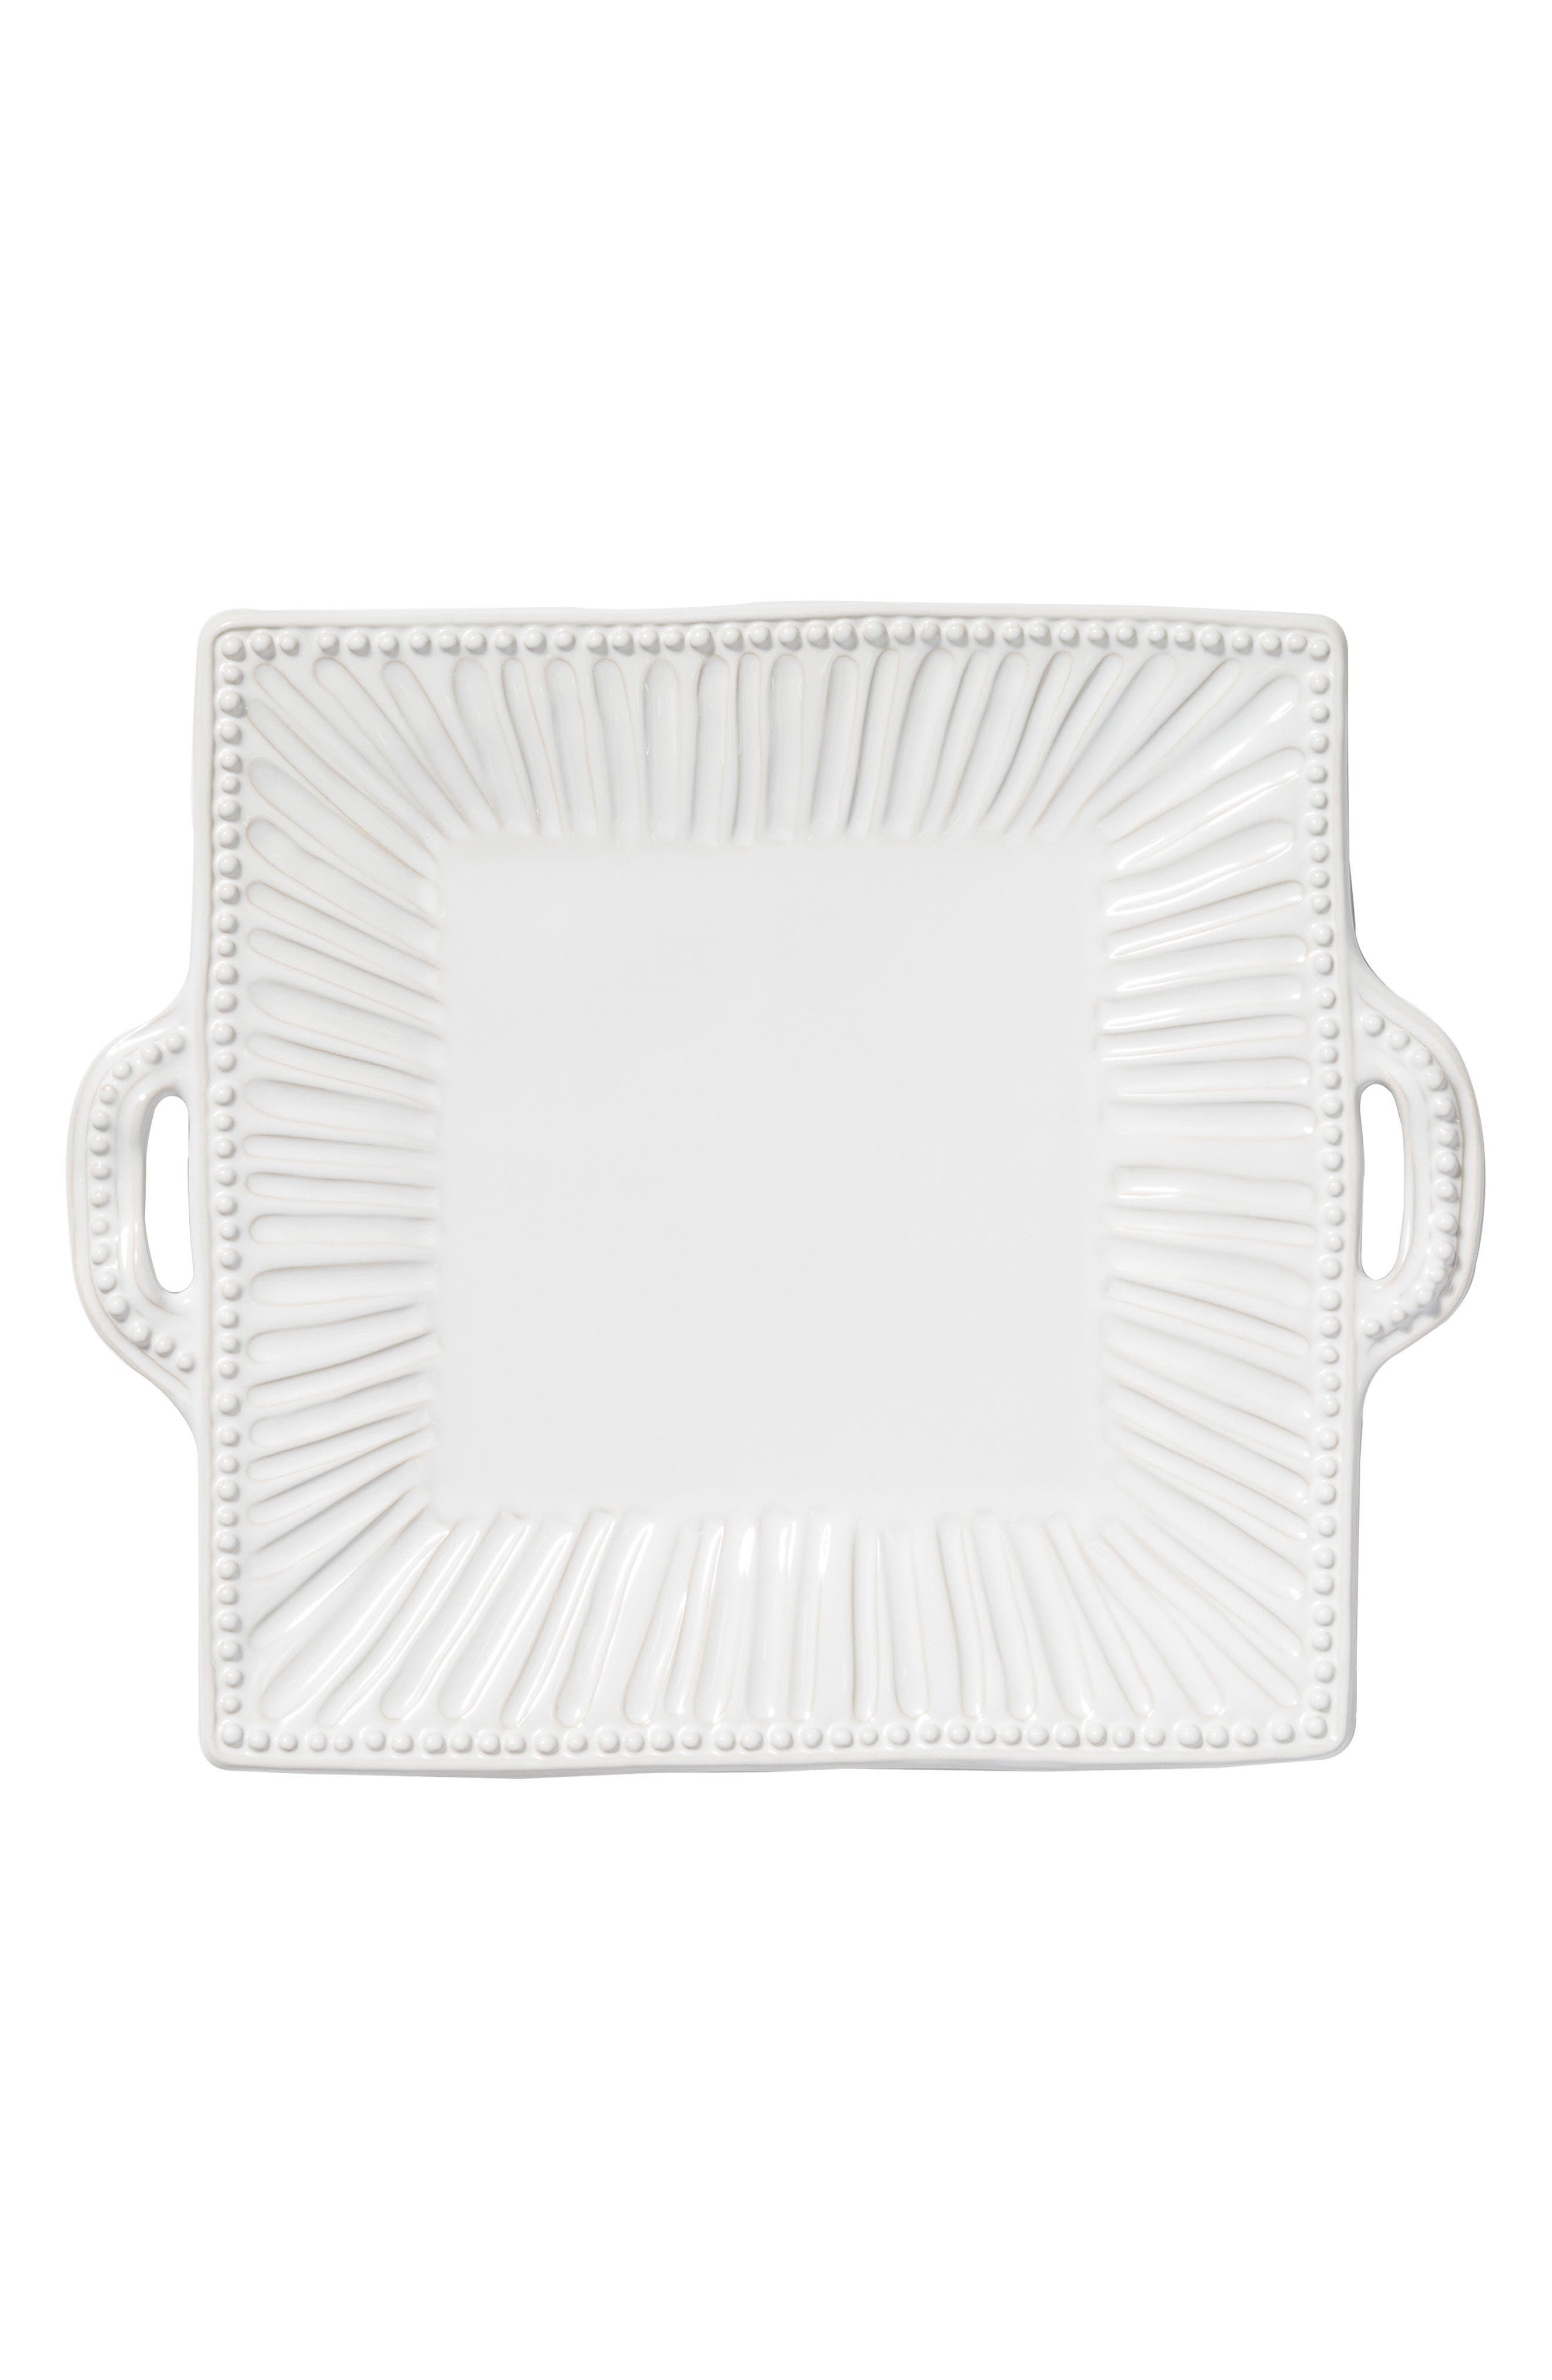 Incanto Stone Stripe Platter,                         Main,                         color, WHITE